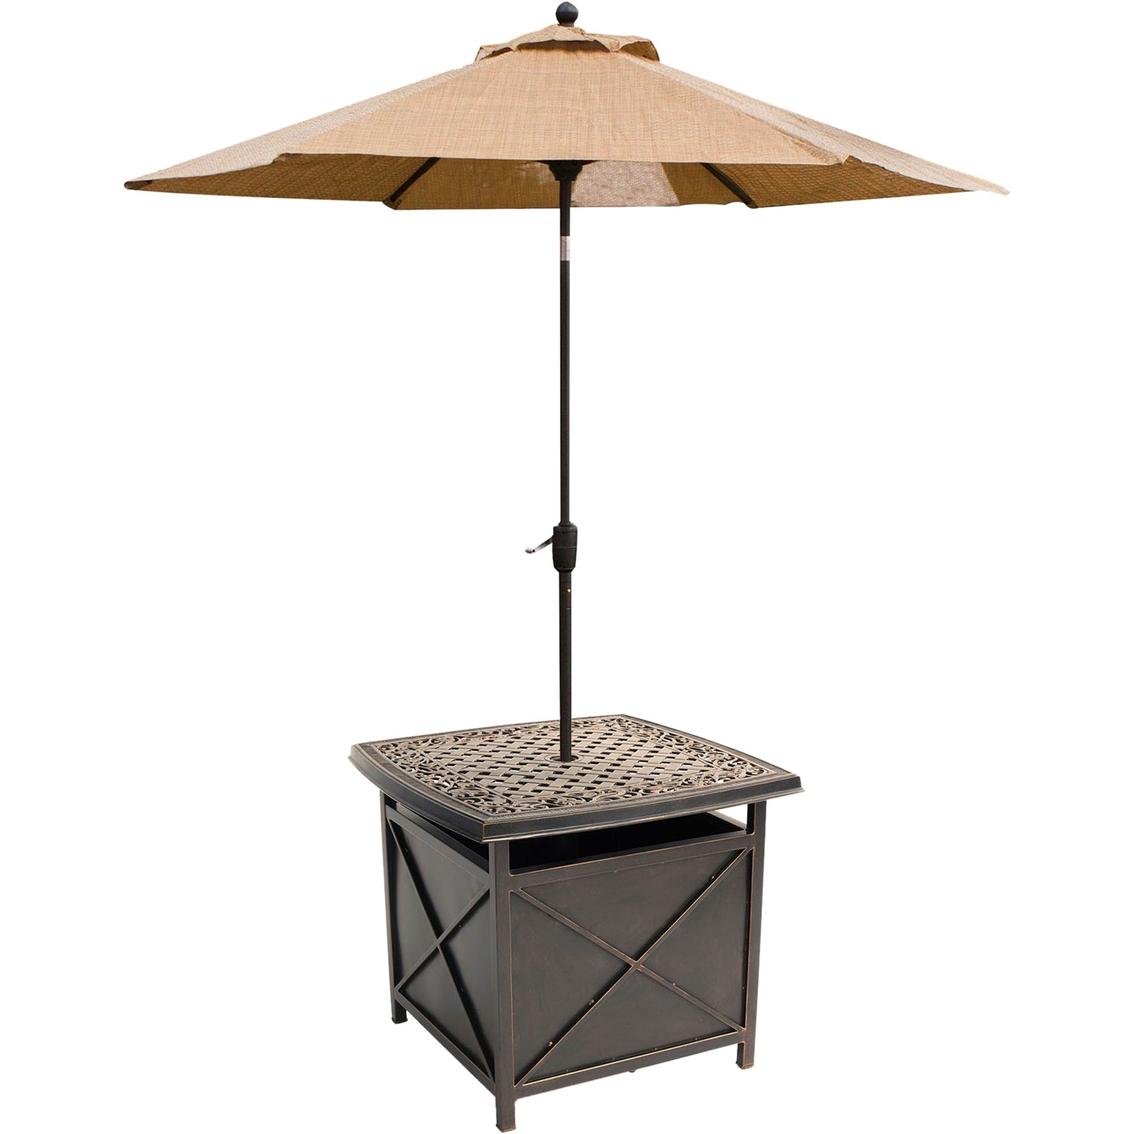 hanover outdoor traditions cast top side table and umbrella stand jacket with hood inch carsons furniture nautical tures storage for small spaces nic bunnings mainstays square